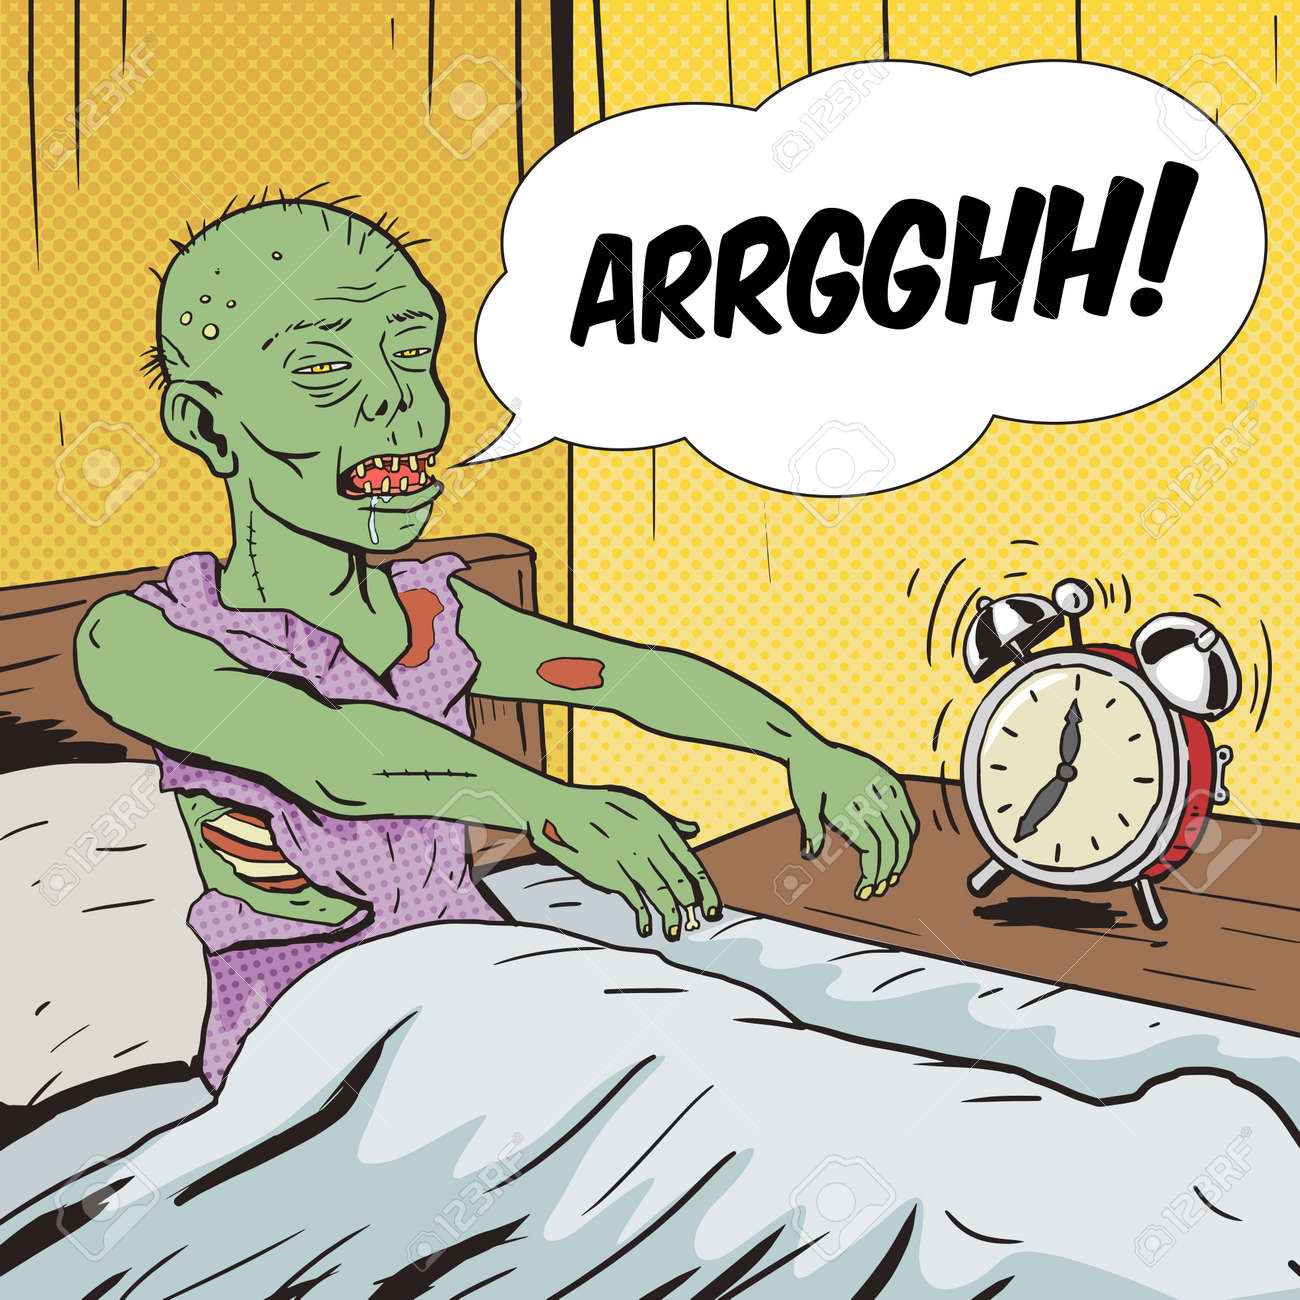 52529283-zombie-waking-up-in-the-morning-pop-art-style-vector-illustration-comic-book-style-imitation-vintage.jpg